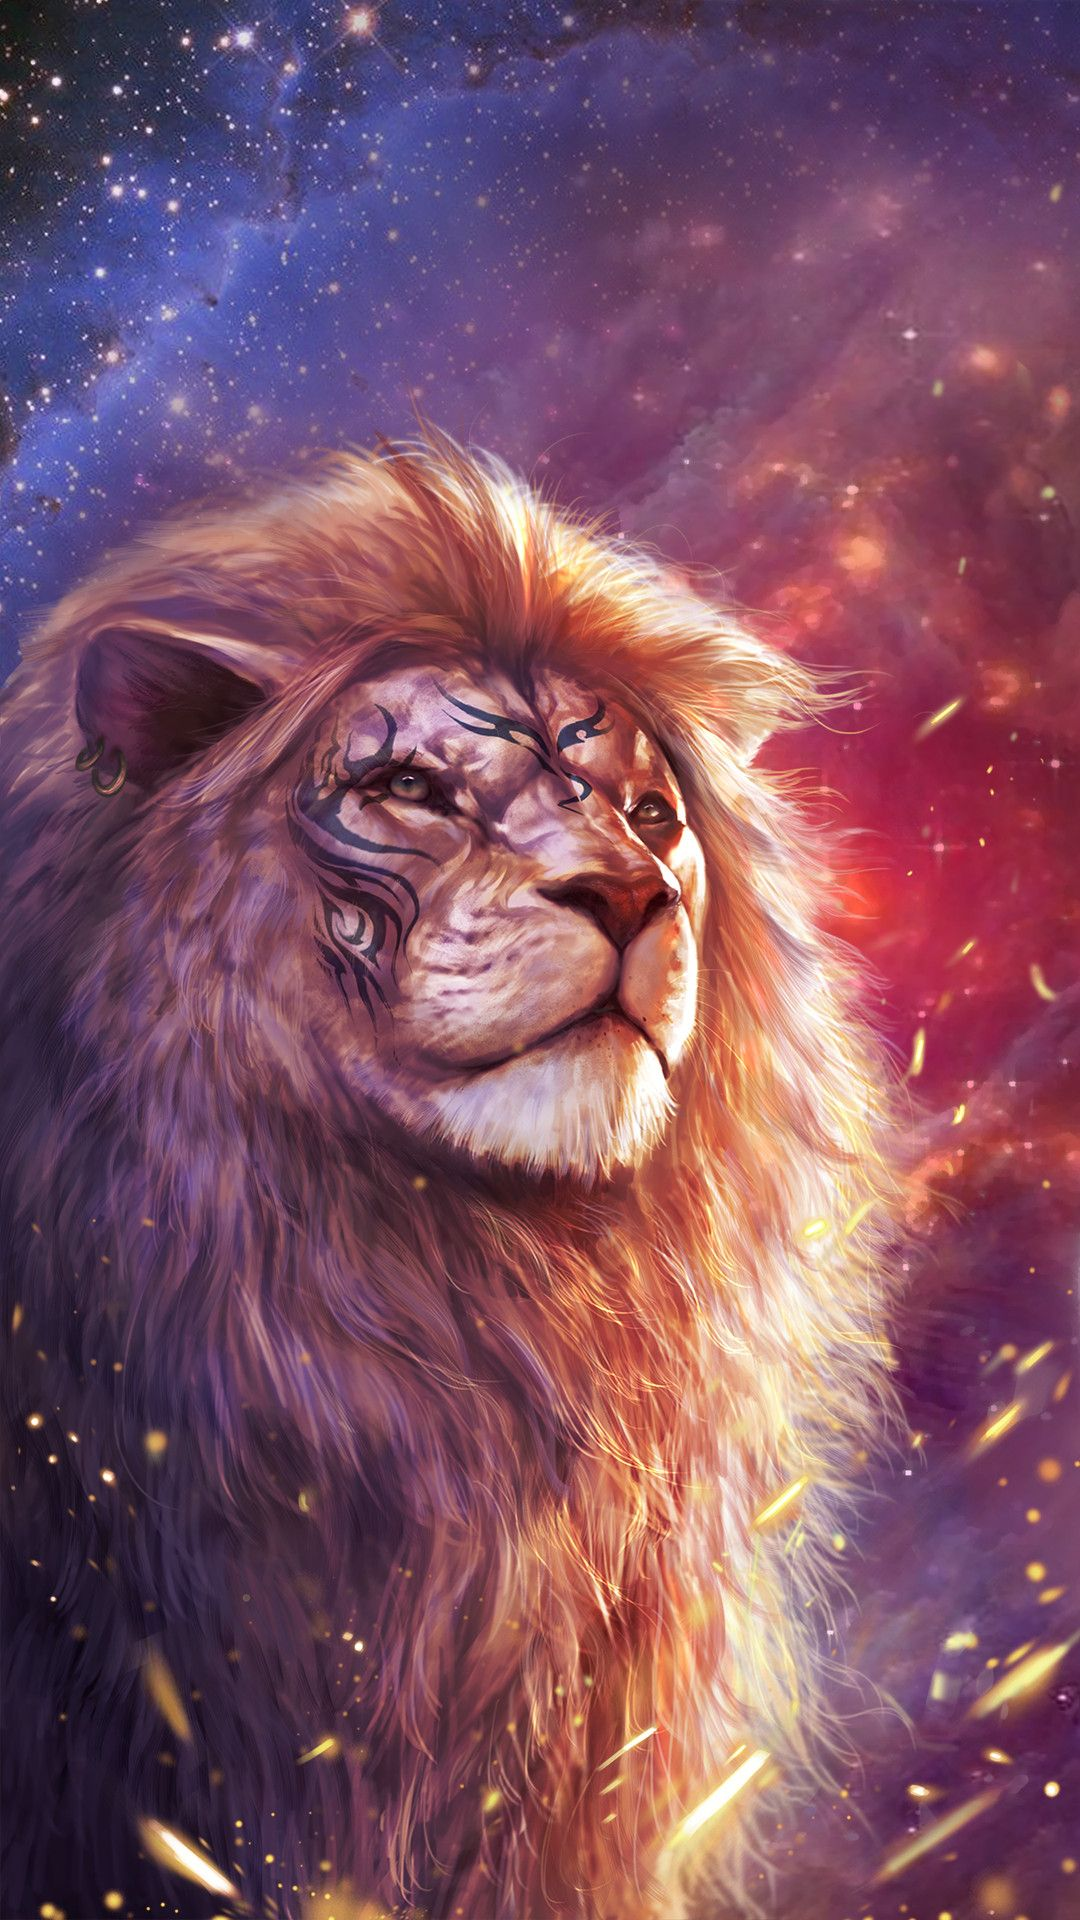 1080x1920 68+ Colorful Lion Wallpapers on WallpaperPlay